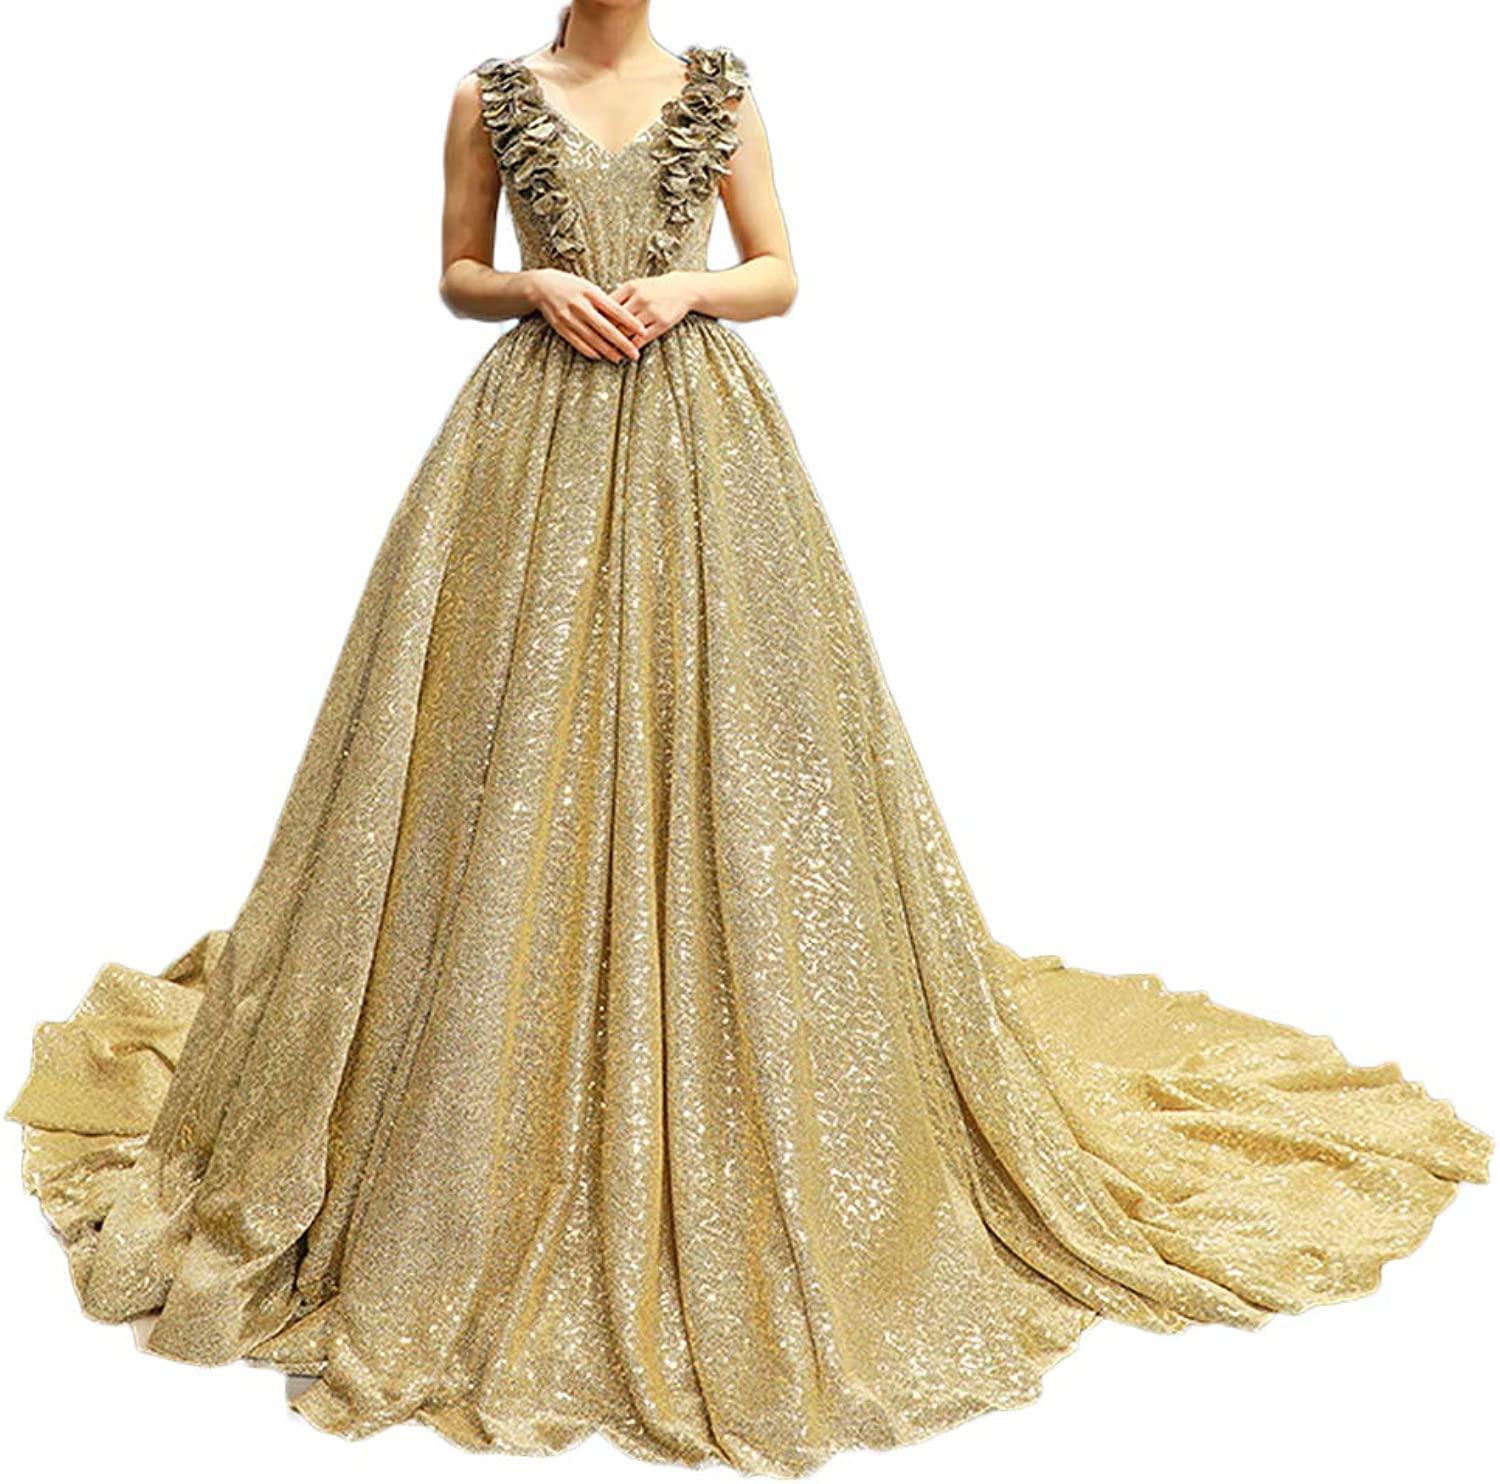 Blacktiedress Sparkly Champagne gold Sequined Evening Party Dresses Long Train